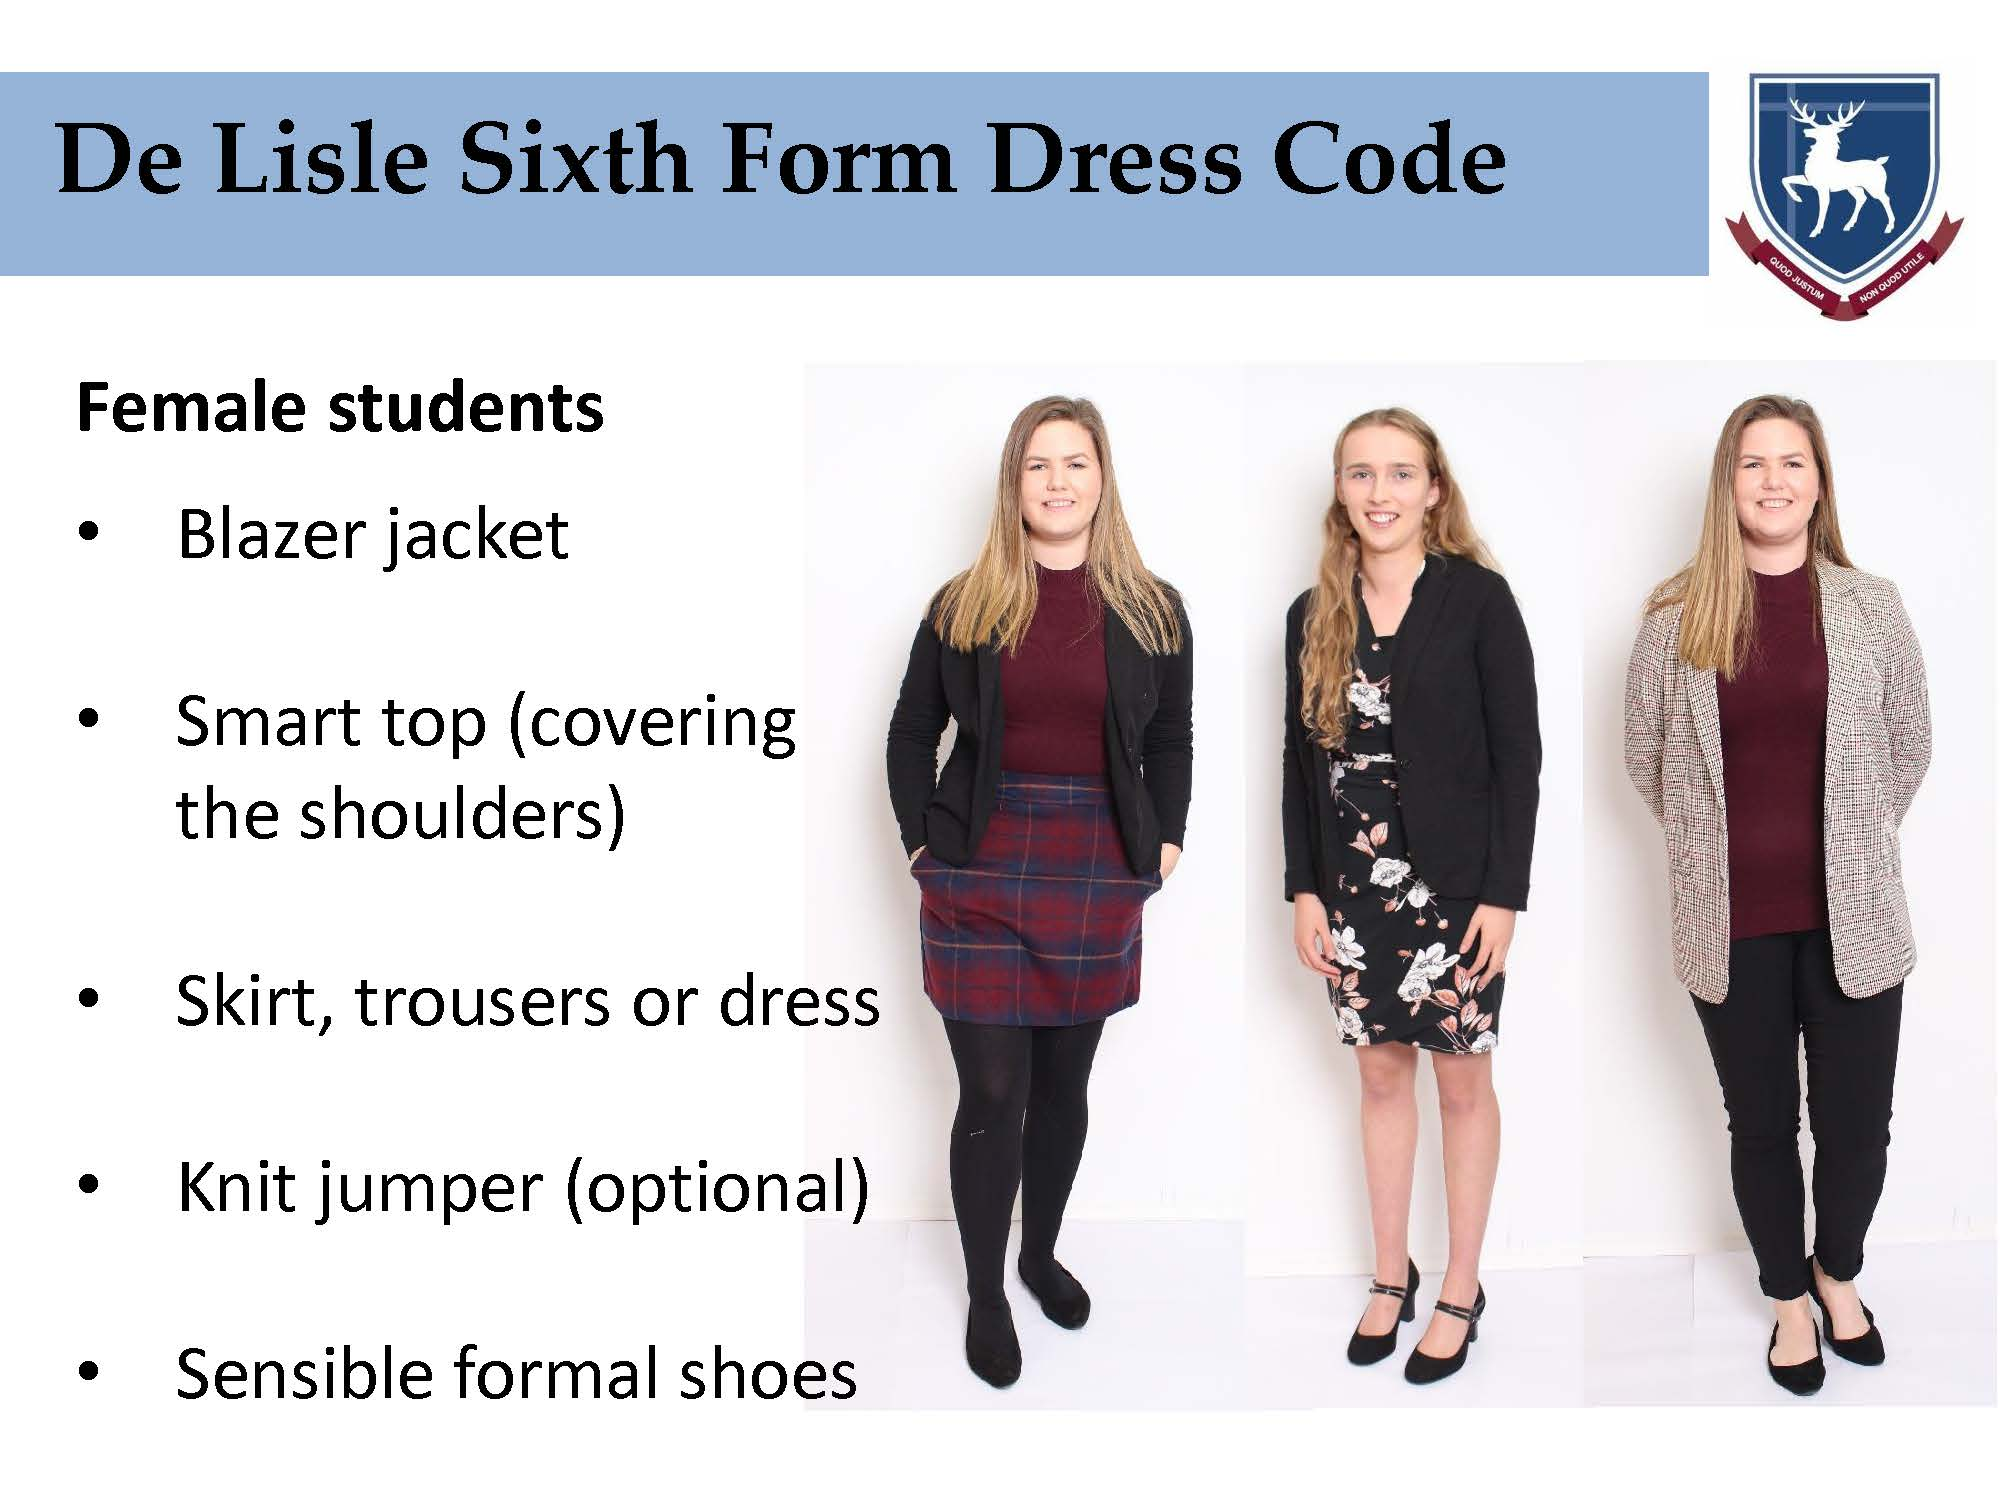 Sixth Form Dress Code brief Page 07